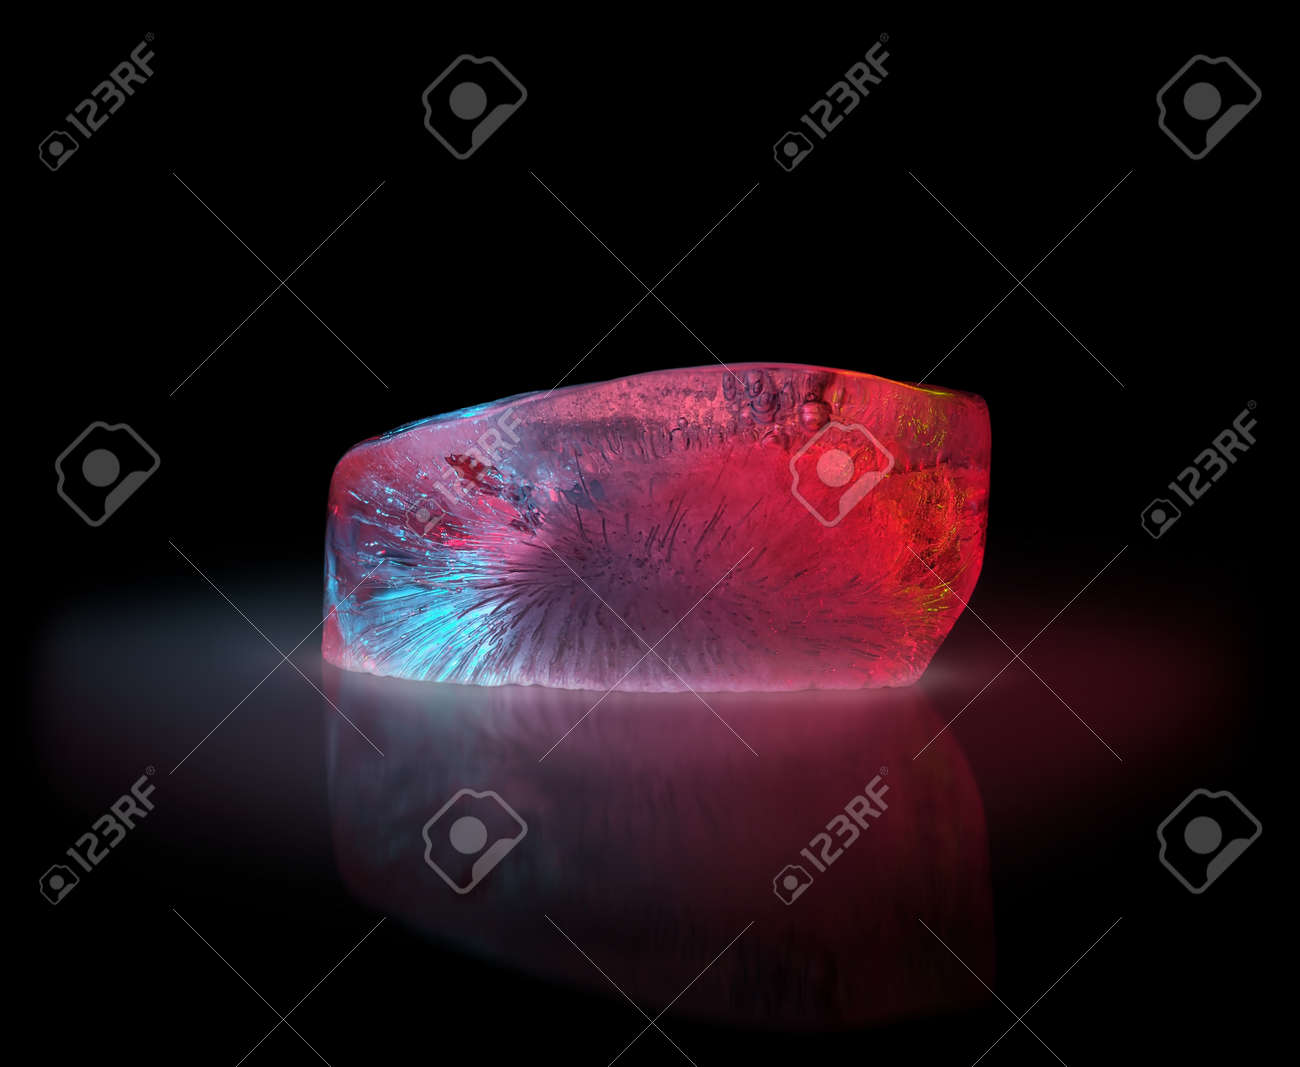 Fancy looking ice crystal on the glass surface - 133378231